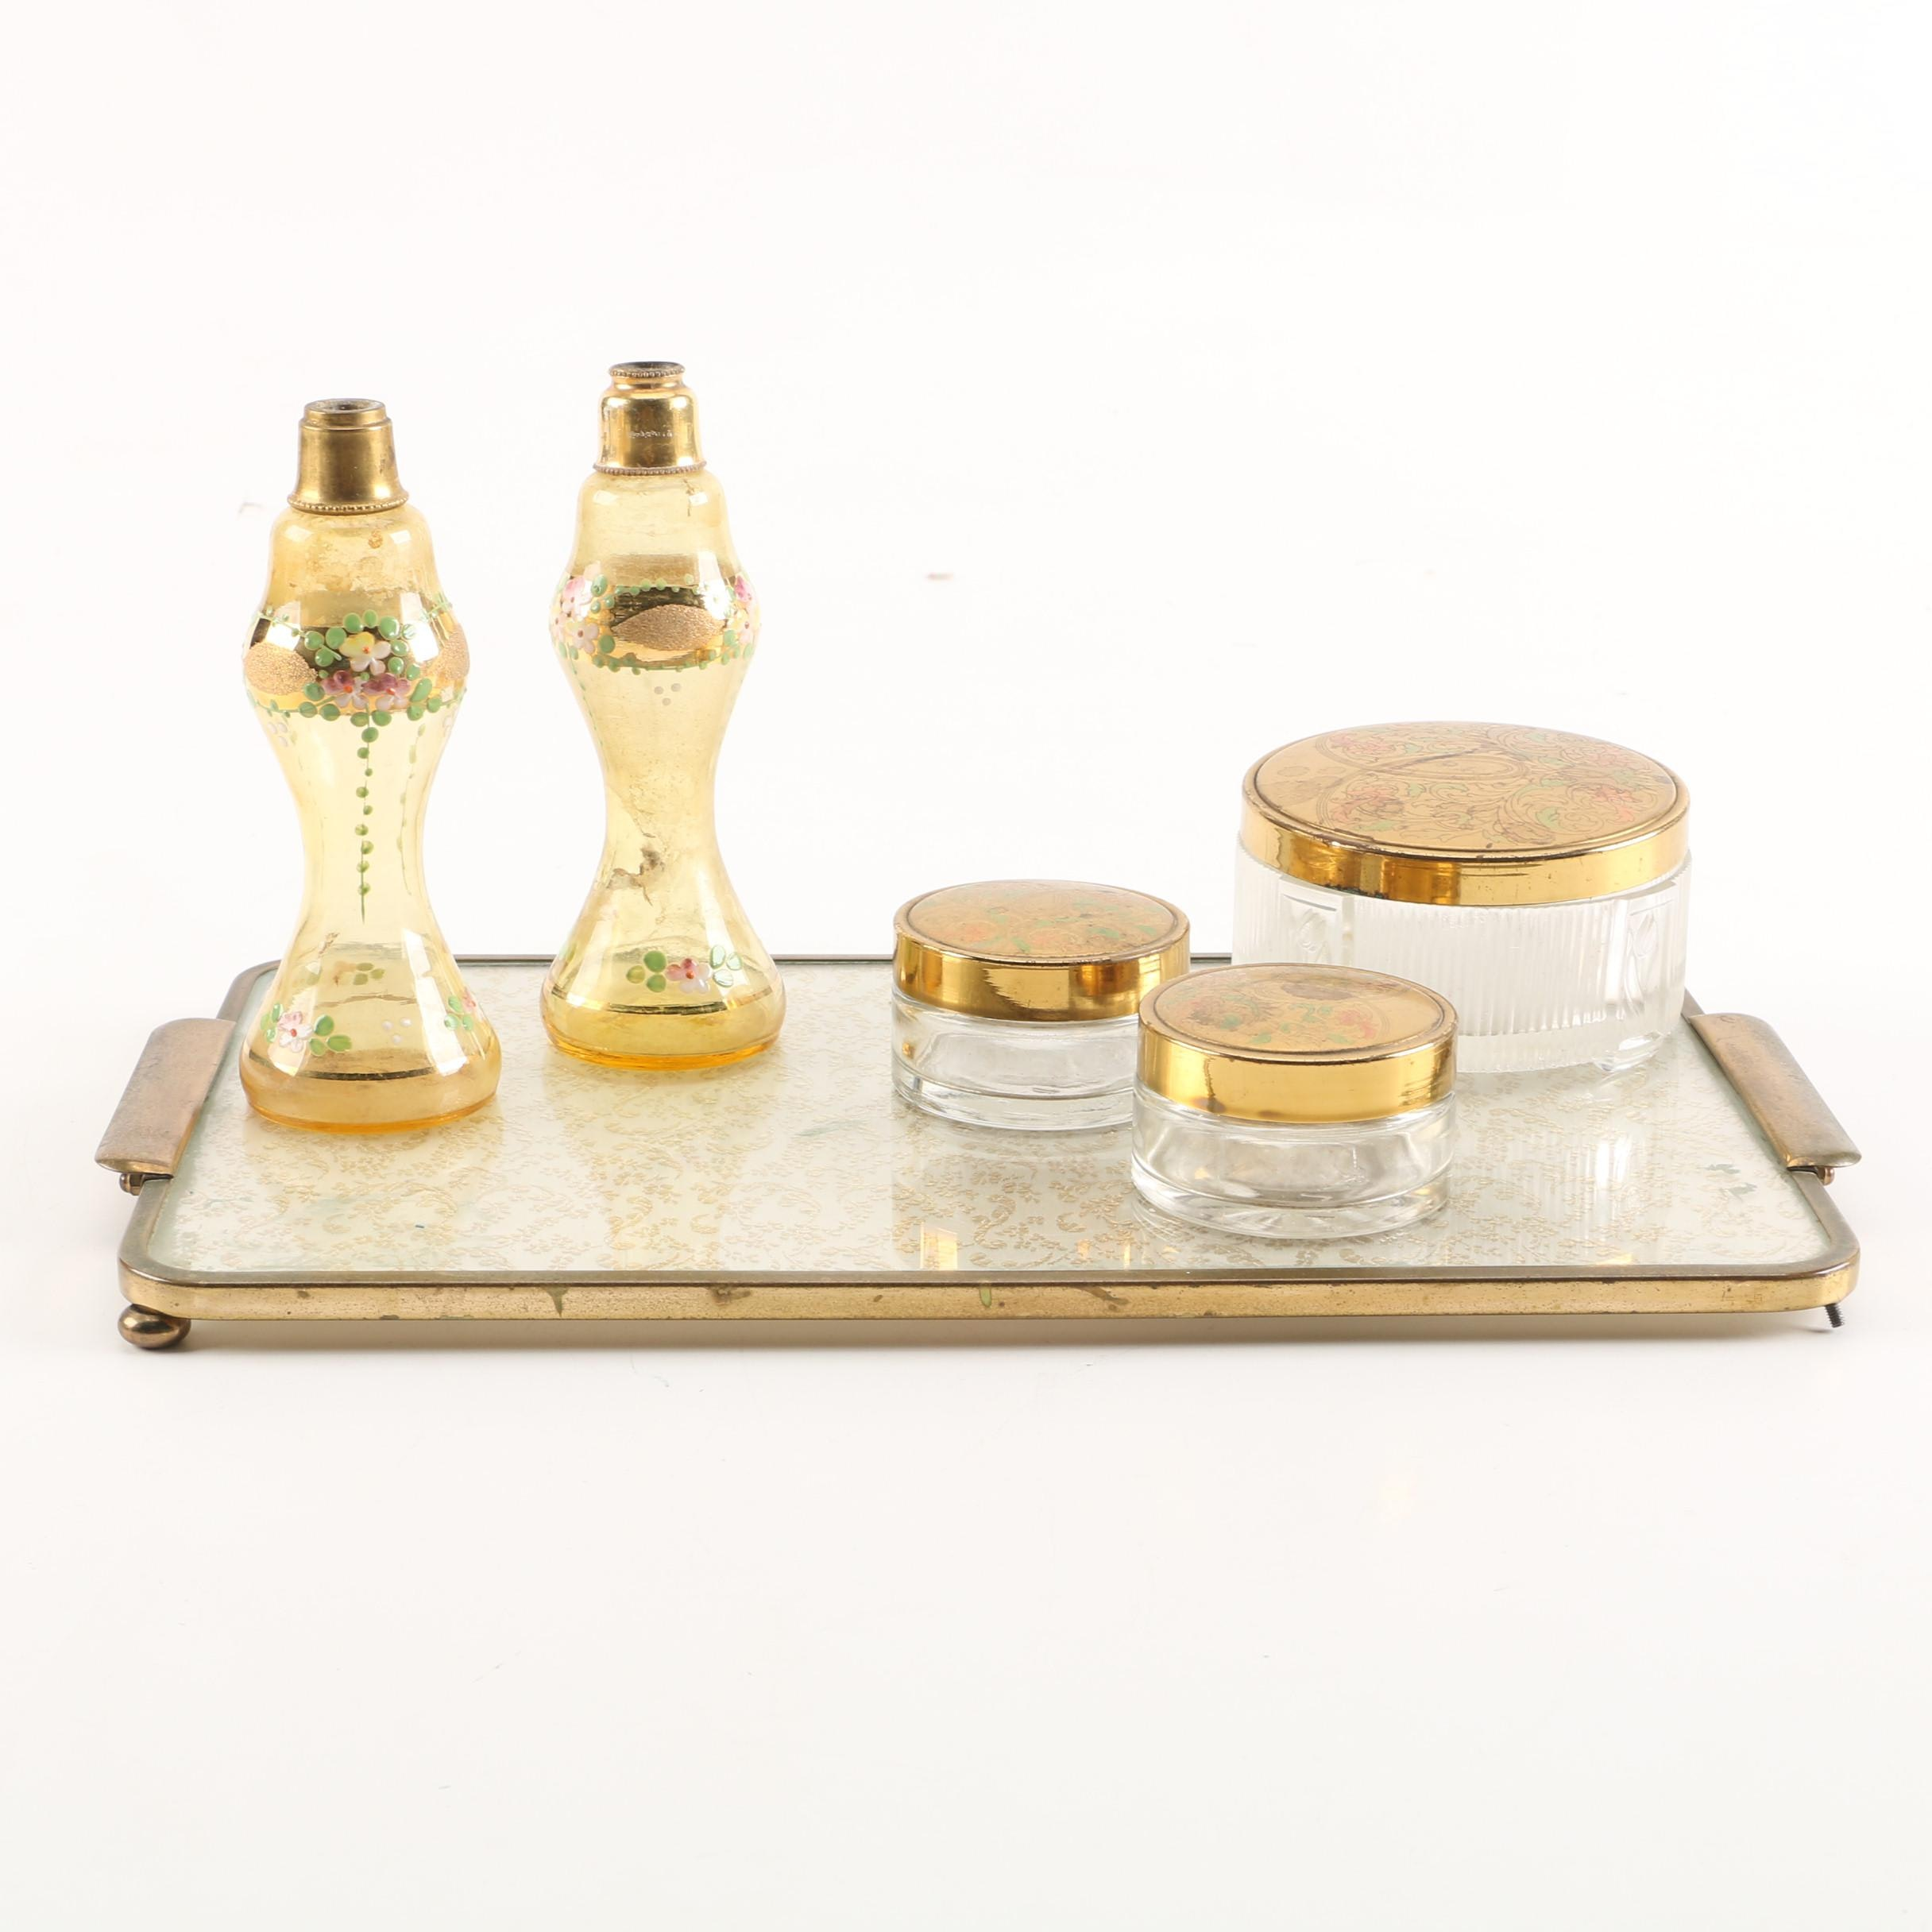 Vintage Vanity Tray, Powder Boxes, and Oil Lamp Bottles